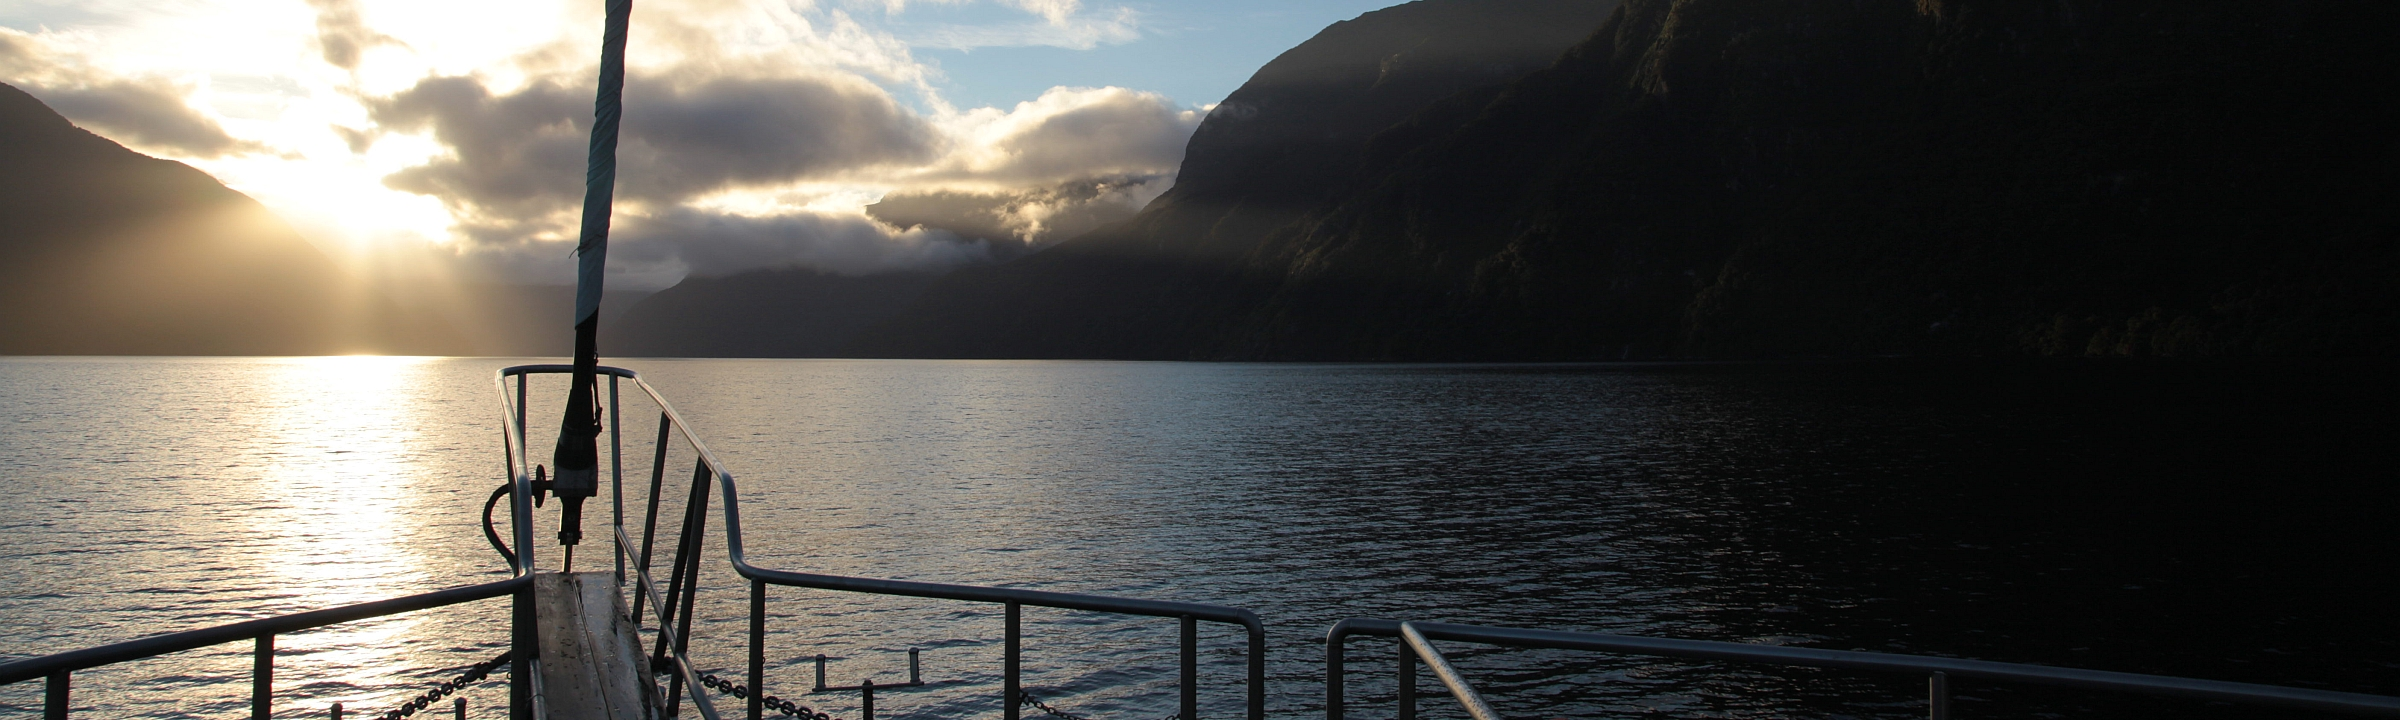 Doubtful Sound – Stille im Fiordland